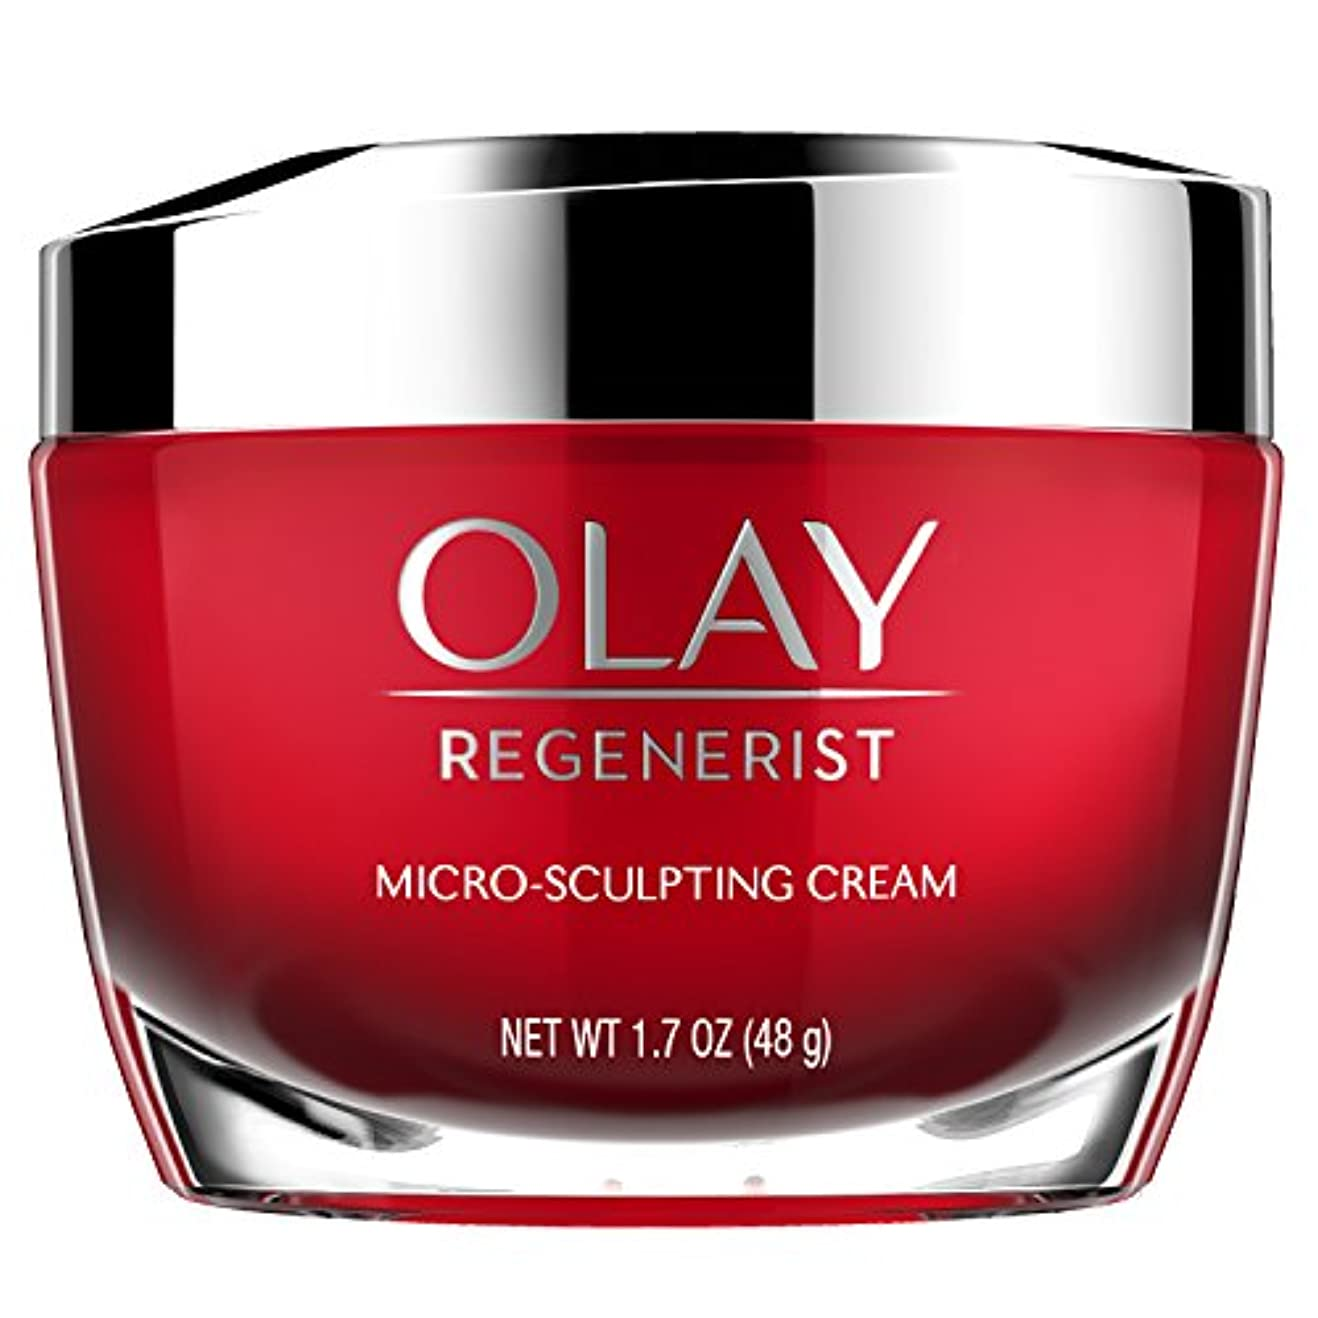 Olay Regenerist Micro-Sculpting Cream 1.7 Oz by Olay